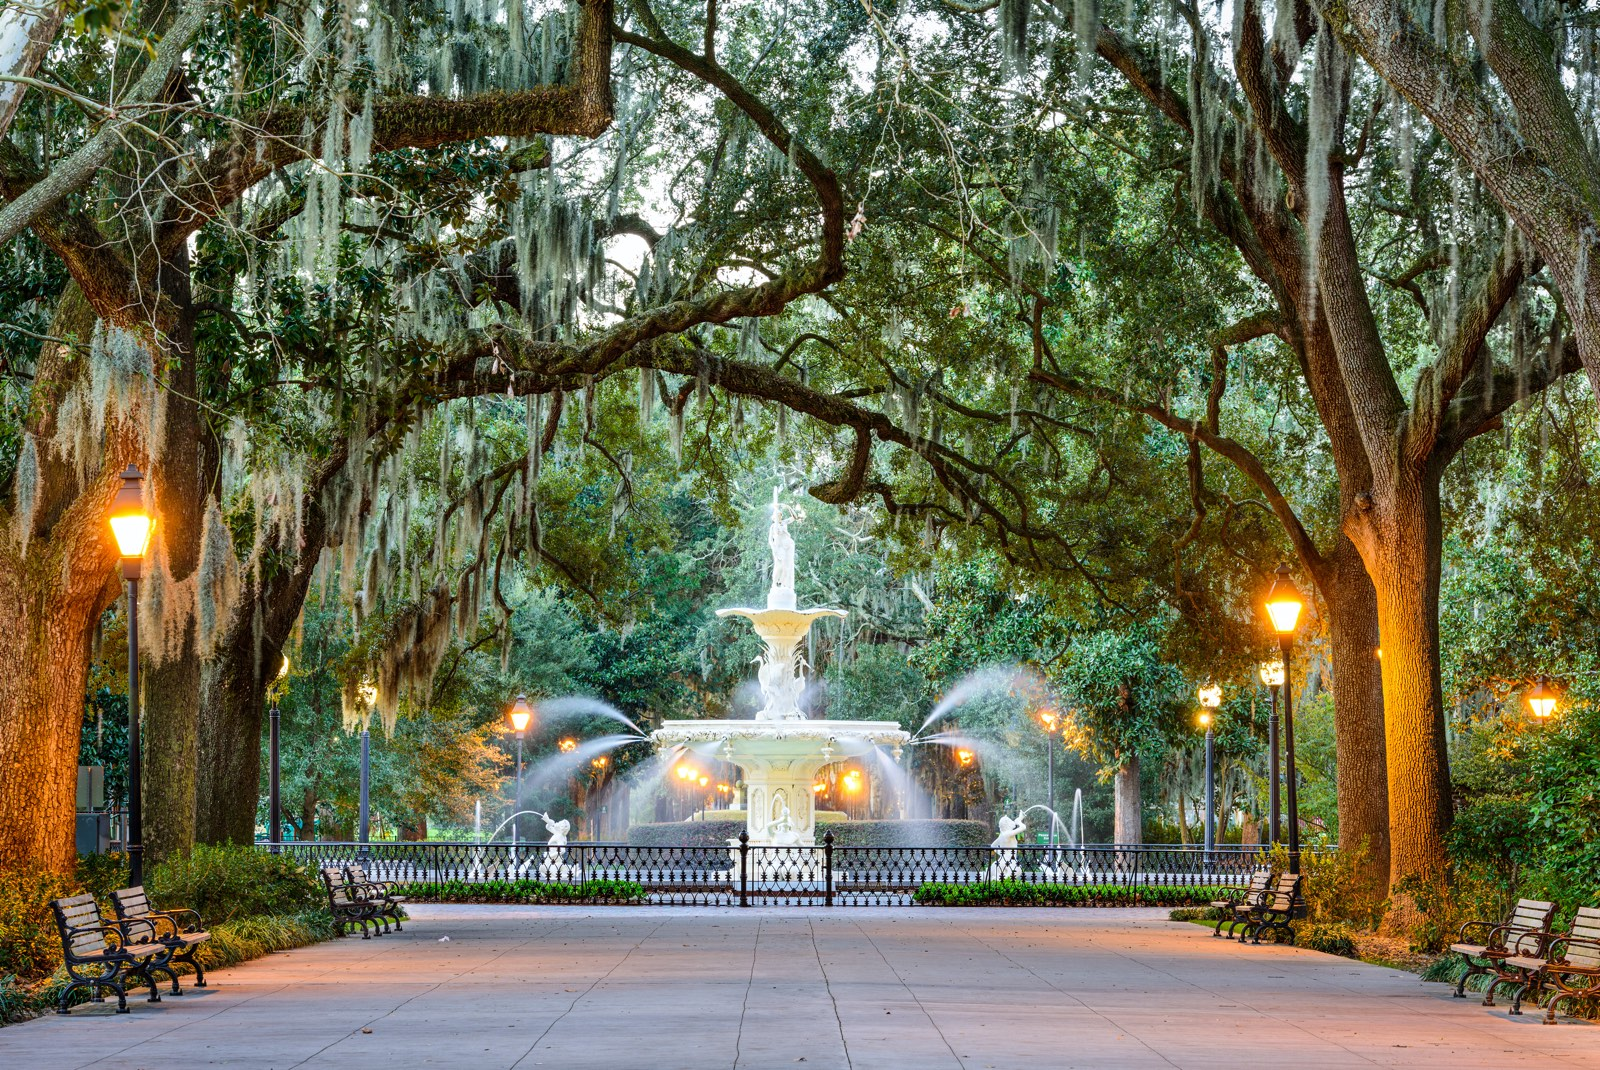 If you love history and southern charm, Savannah is one of the best cities to look at.